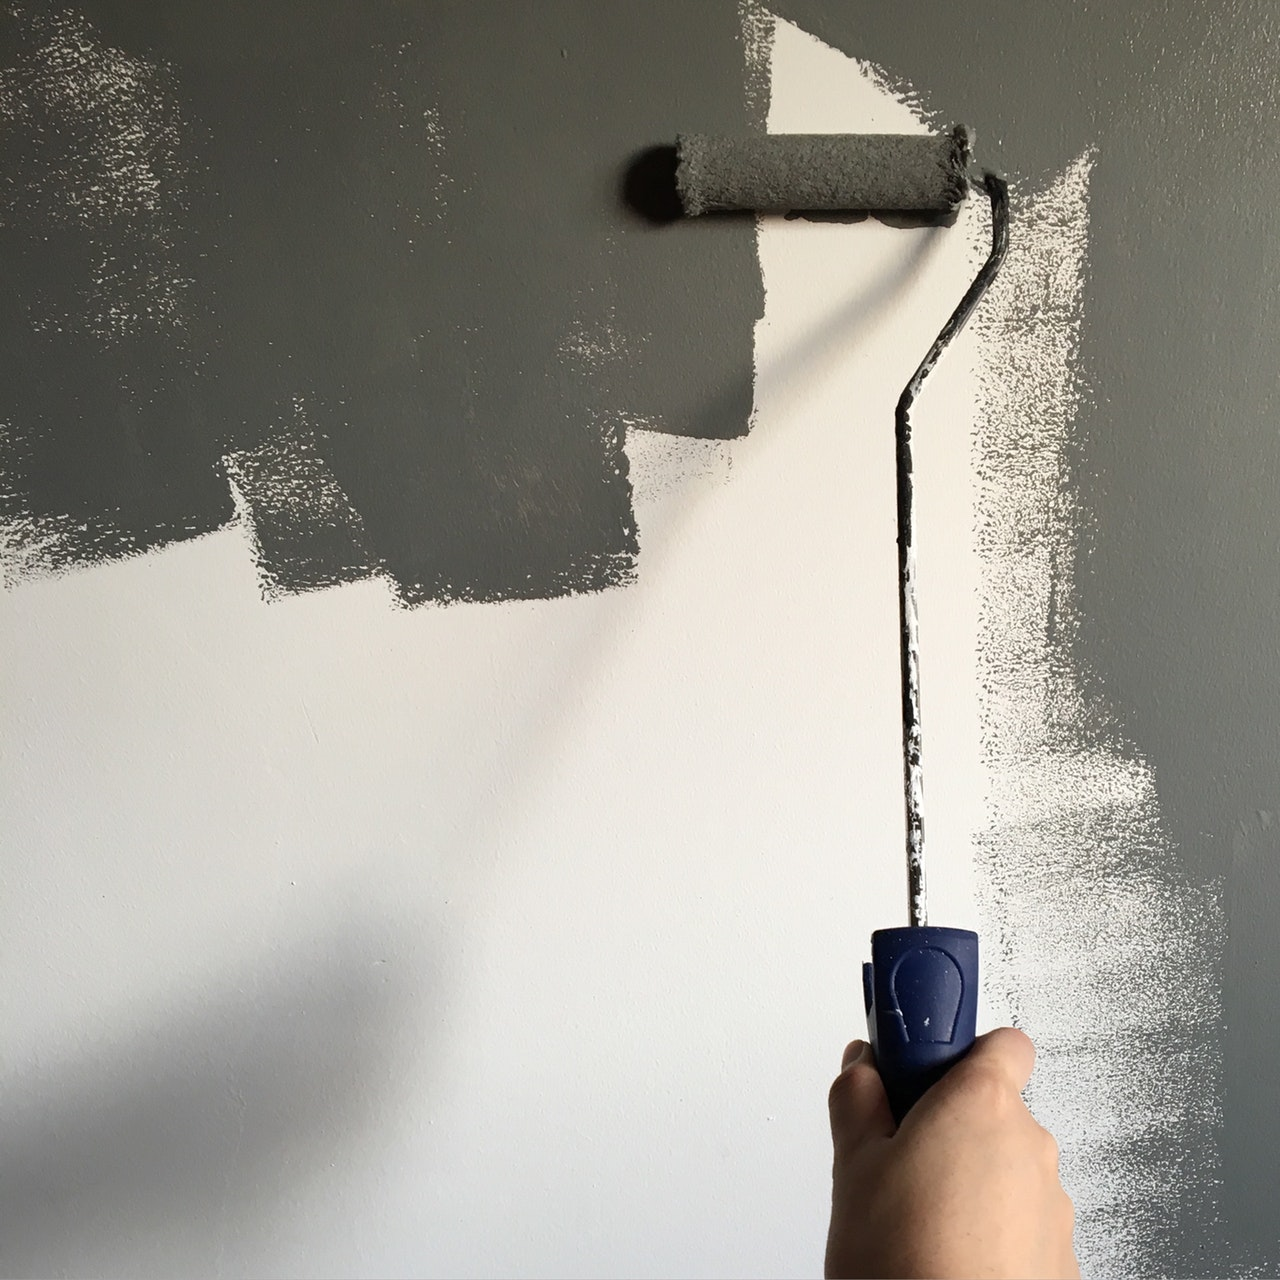 Stress Repainting Help Article Image